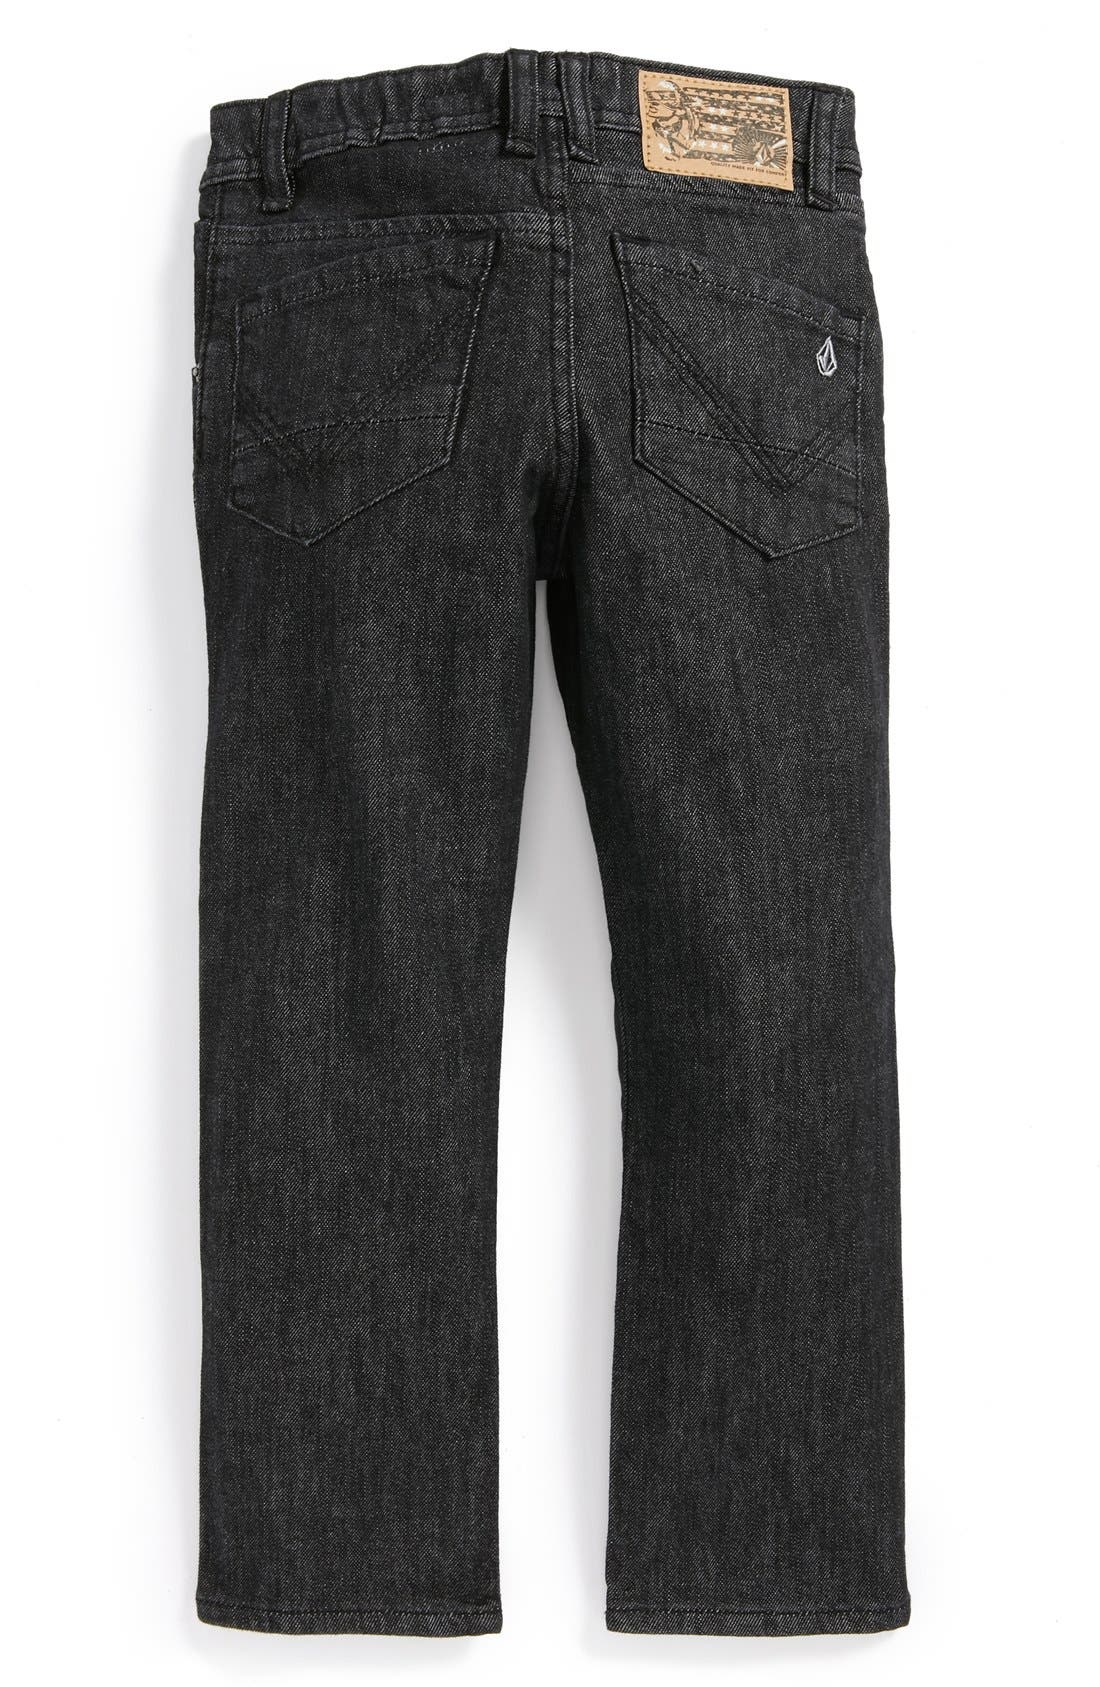 Alternate Image 1 Selected - Volcom 'Nova Little'  Modern Straight Leg Jeans (Little Boys)